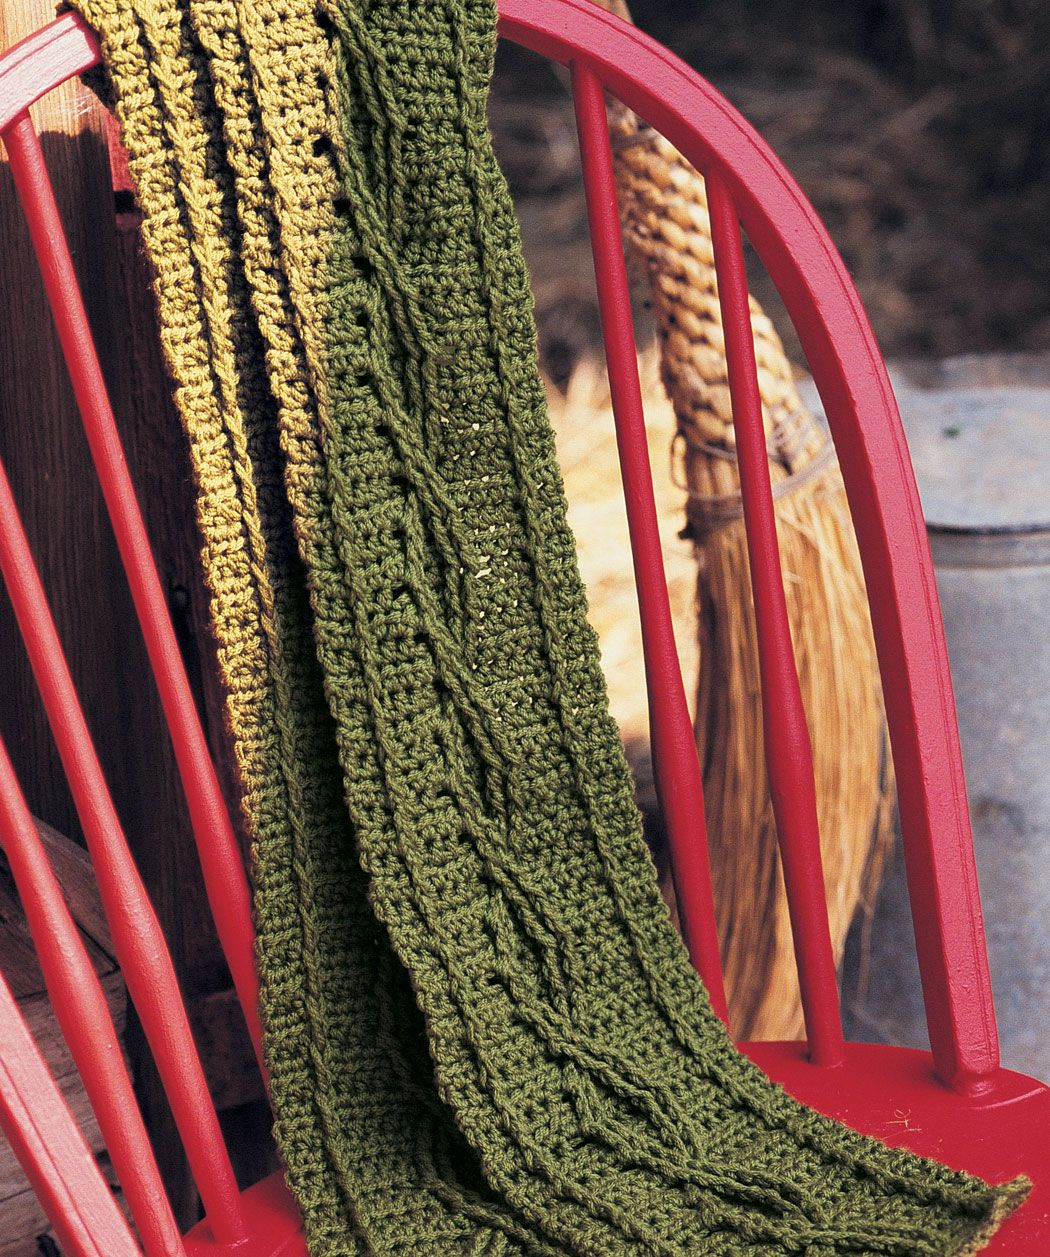 Free Crochet Pattern For Cable Scarf : knit scarf patterns on Pinterest Cable Knitting Patterns ...